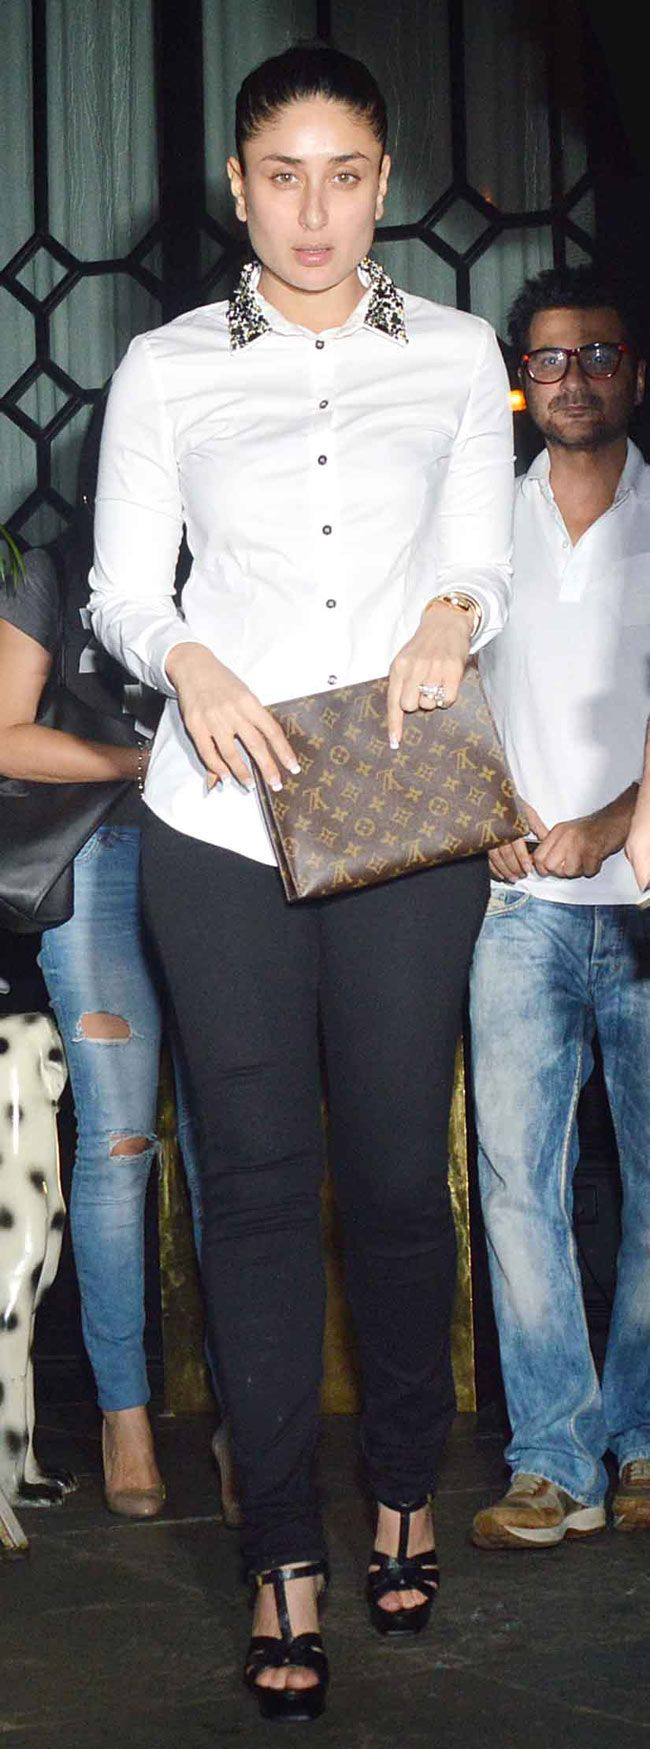 Kareena Kapoor Khan, also in picture: Sanjay Kapoor clicked exiting popular Mumbai nightspot, Nido. #Style #Bollywood #Fashion #Beauty